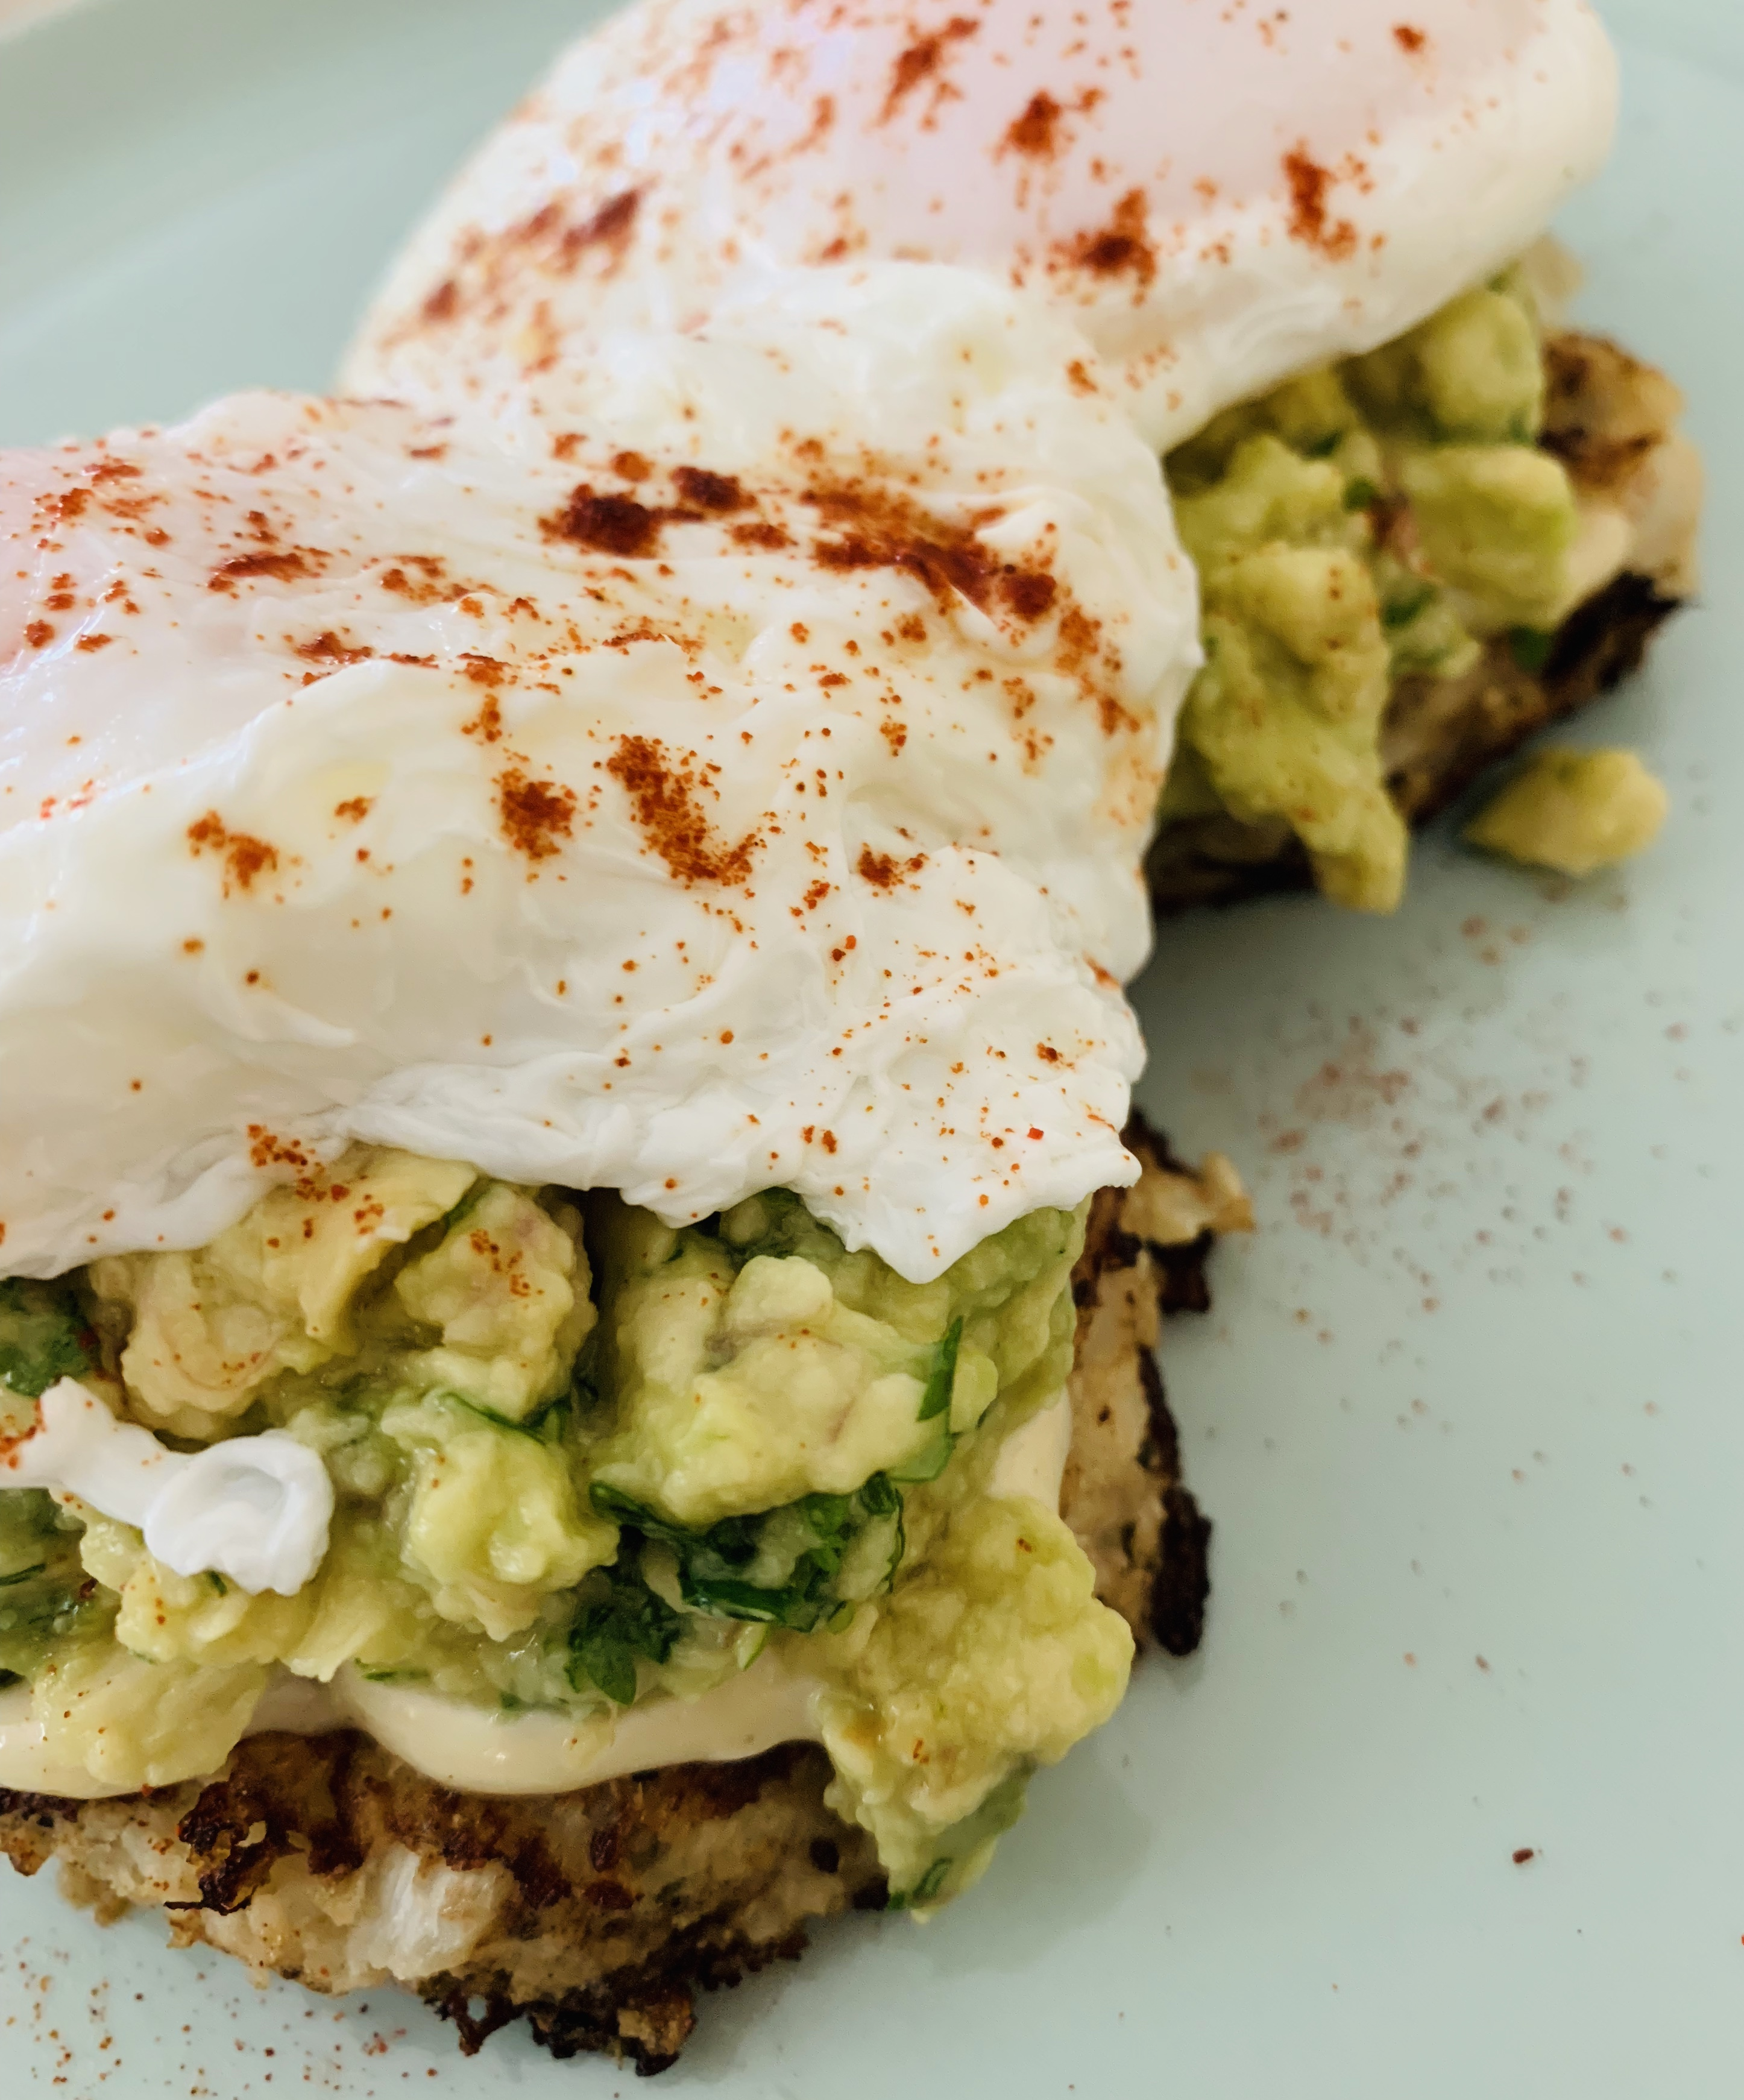 UFIT Recipes: Cauliflower English Muffins, Coriander Smashed Avo, Homemade Mayo and Poached Eggs